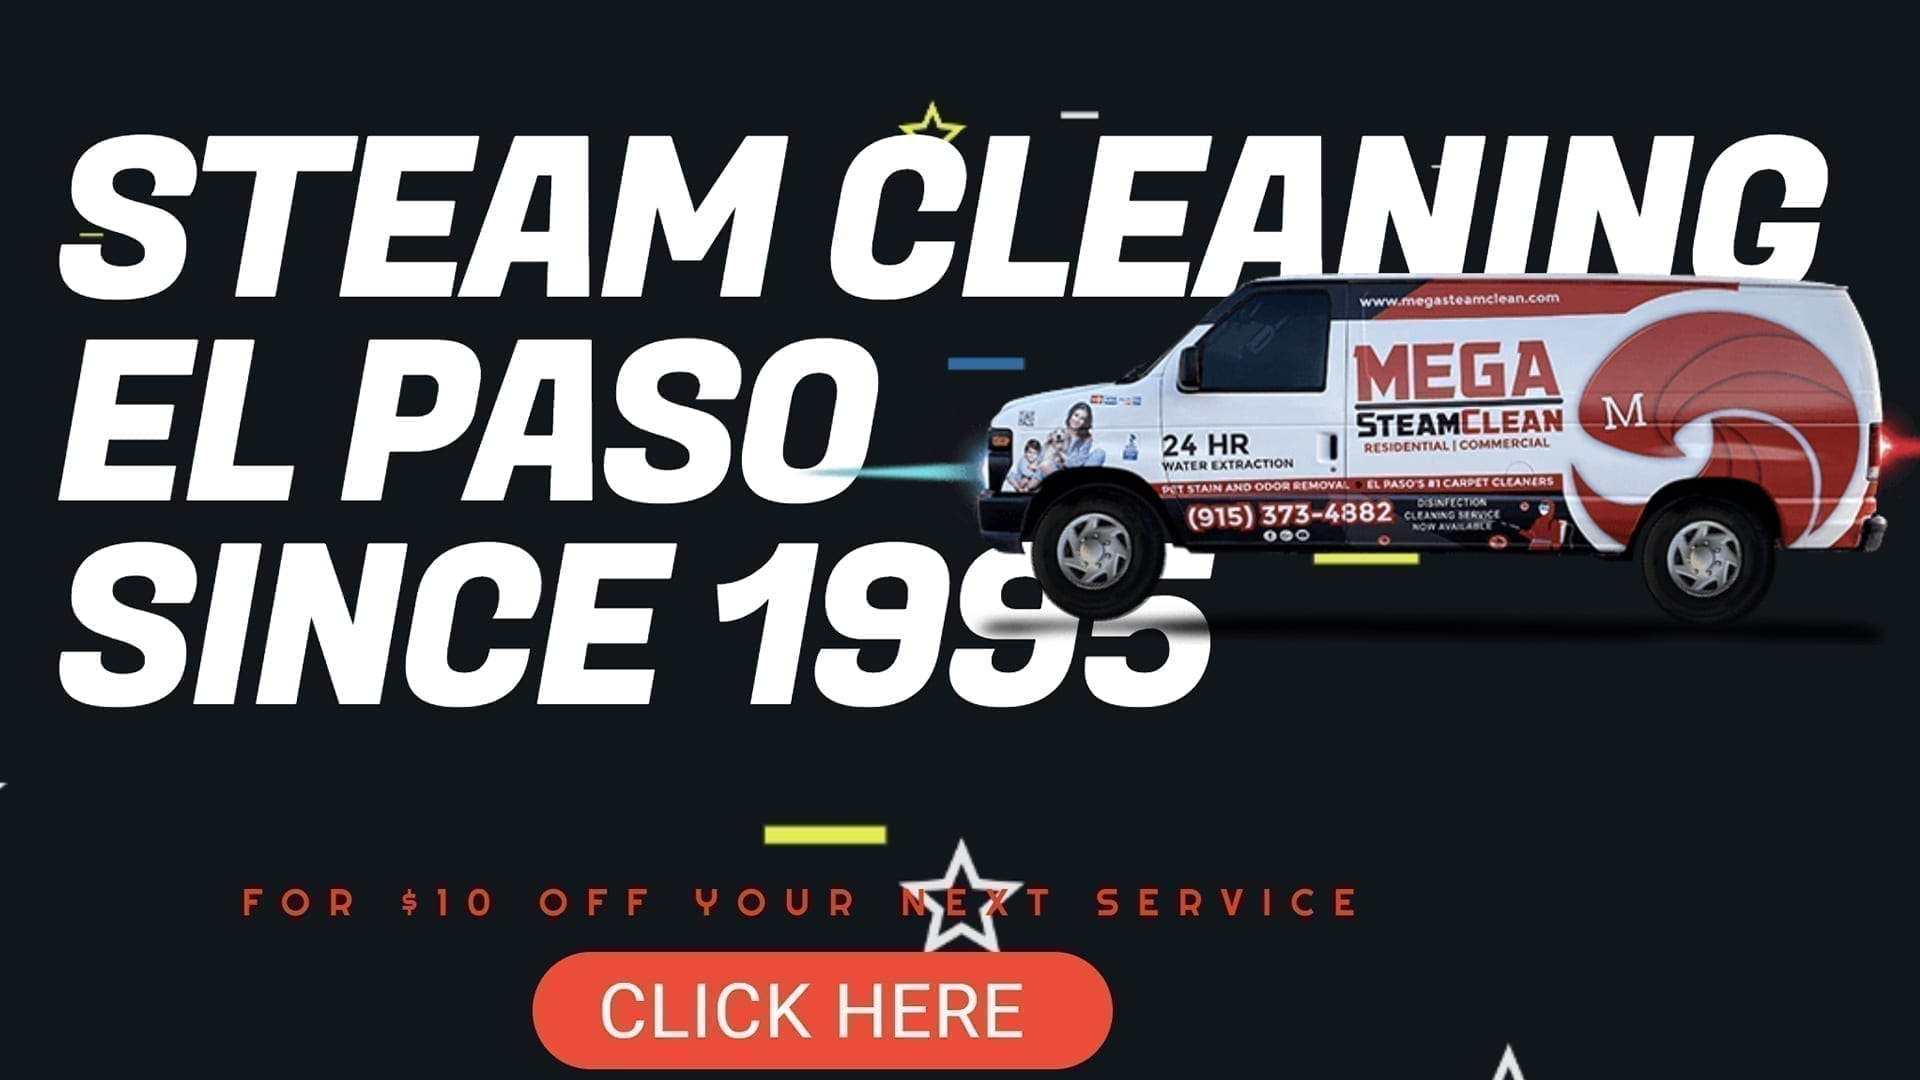 steam-cleaning-in-el-paso-mega-steam-clean-van